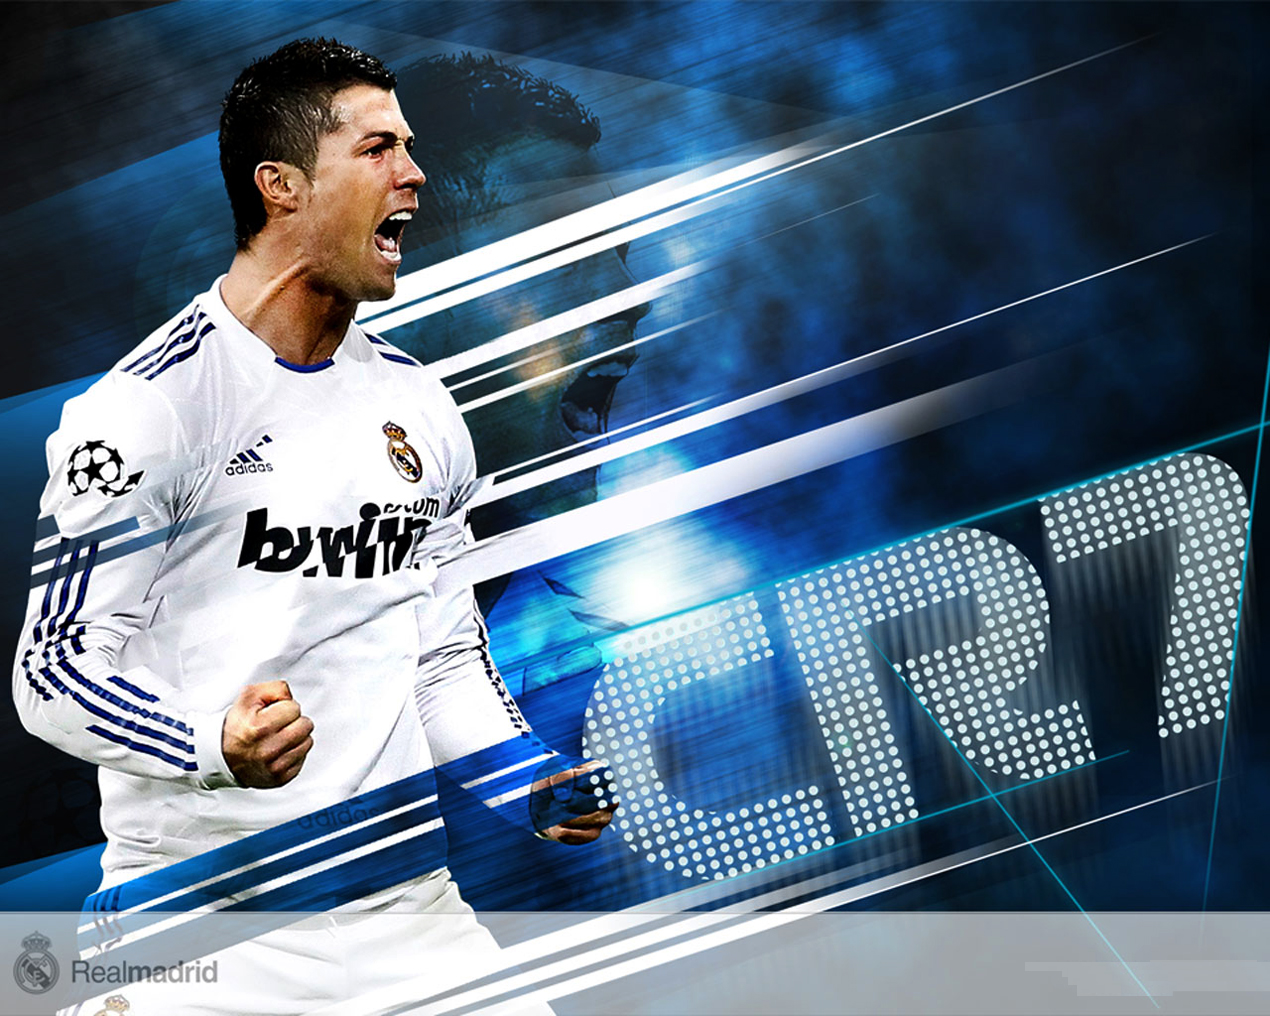 Cristiano Ronaldo Cool Wallpaper at Best HD Wallpaper